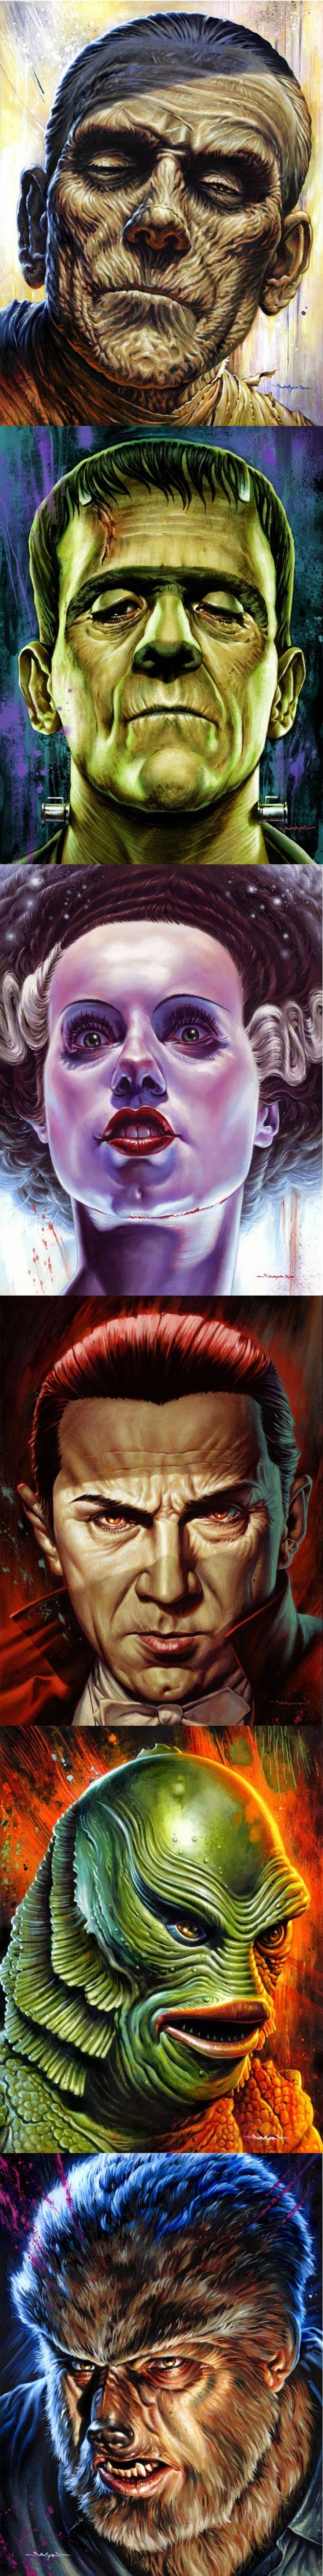 "Jason Edmiston's Incredible ""Monsters"" Series Paintings I'm obsessed!!!!!!"